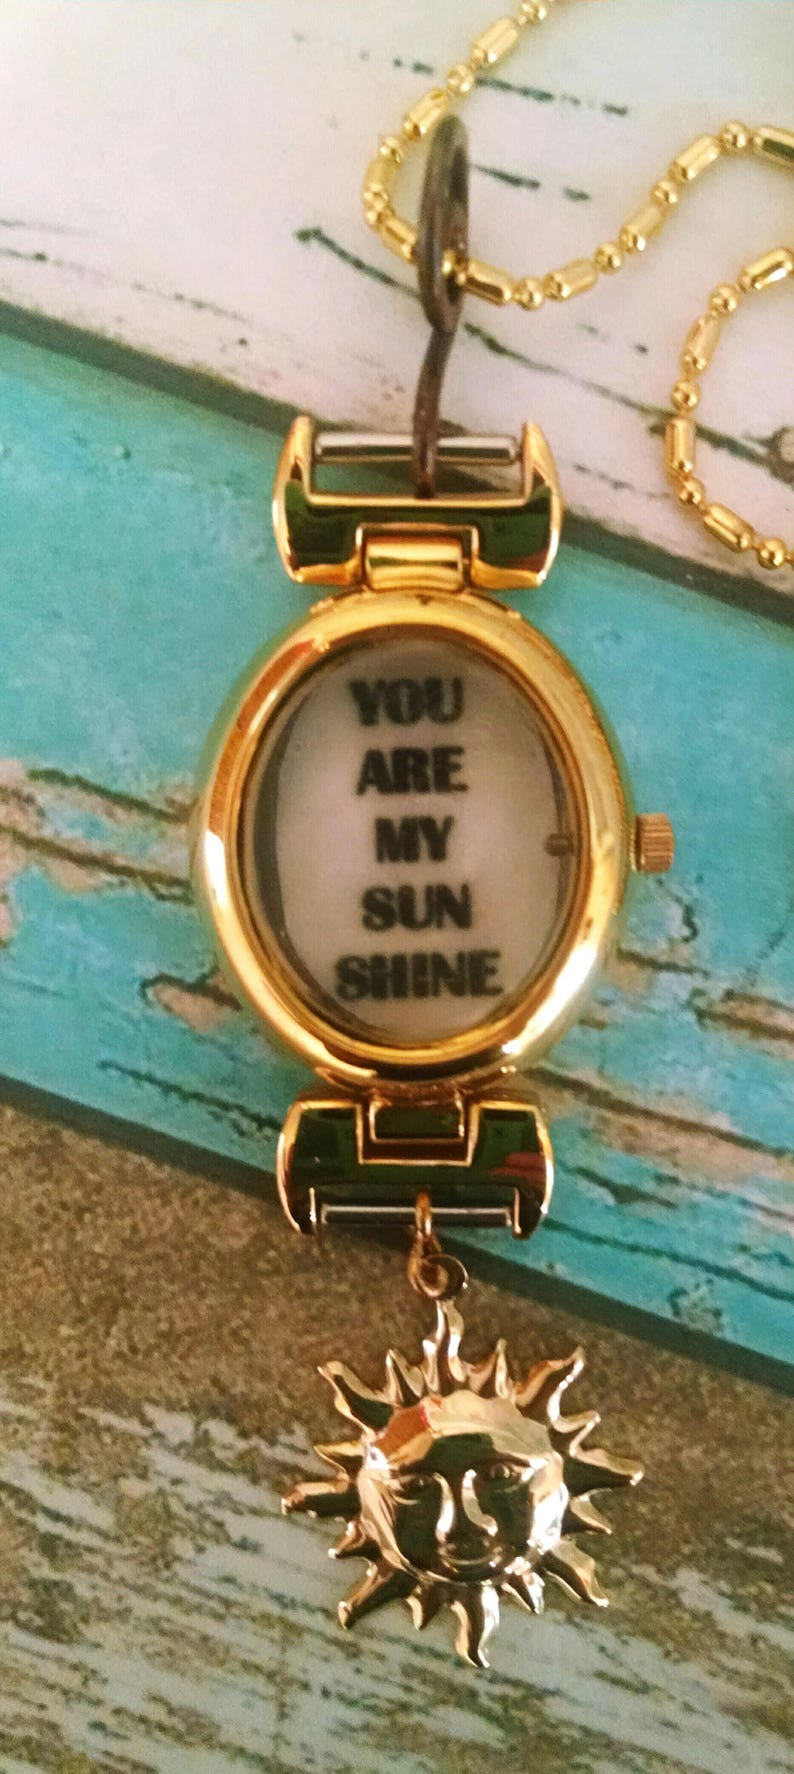 You Are My Sunshine Charm and Vintage Watch Face Necklace image 0